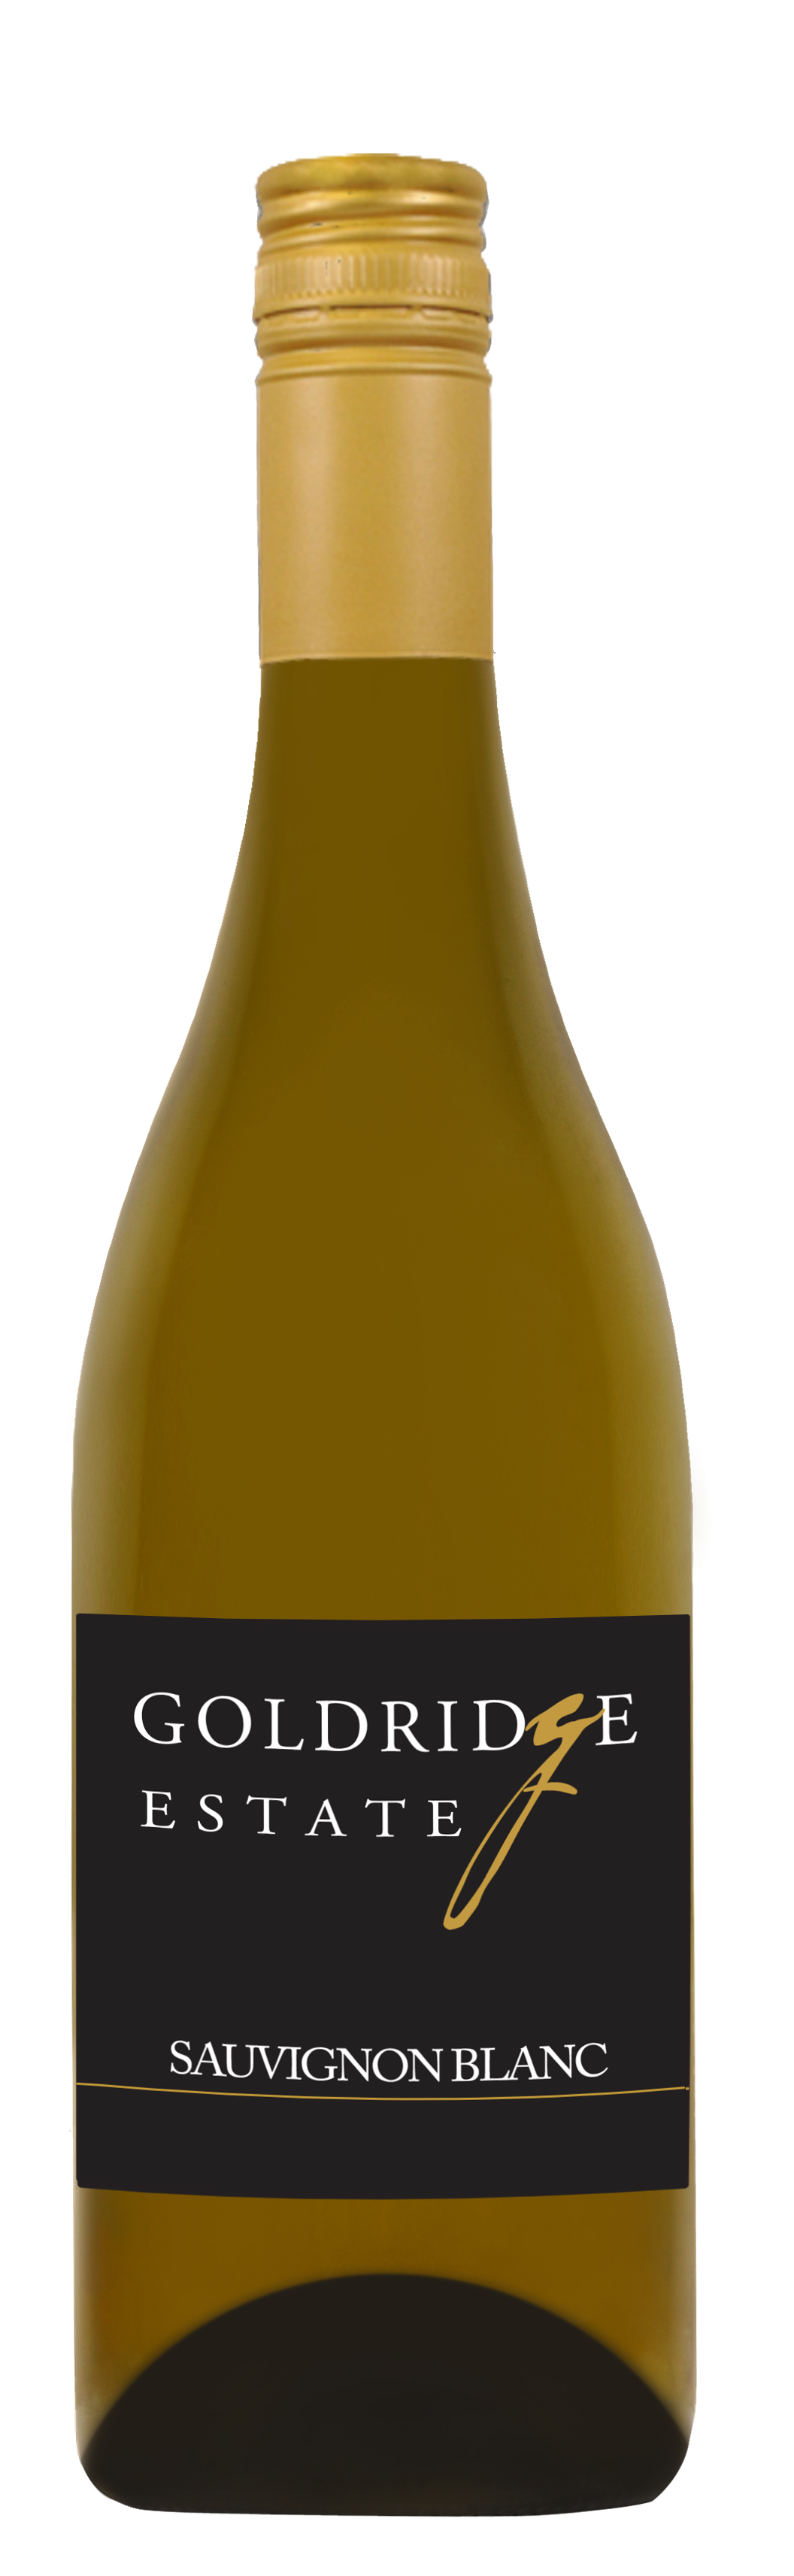 GOLDRIDGE ESTATE SAUVIGNON BLANC